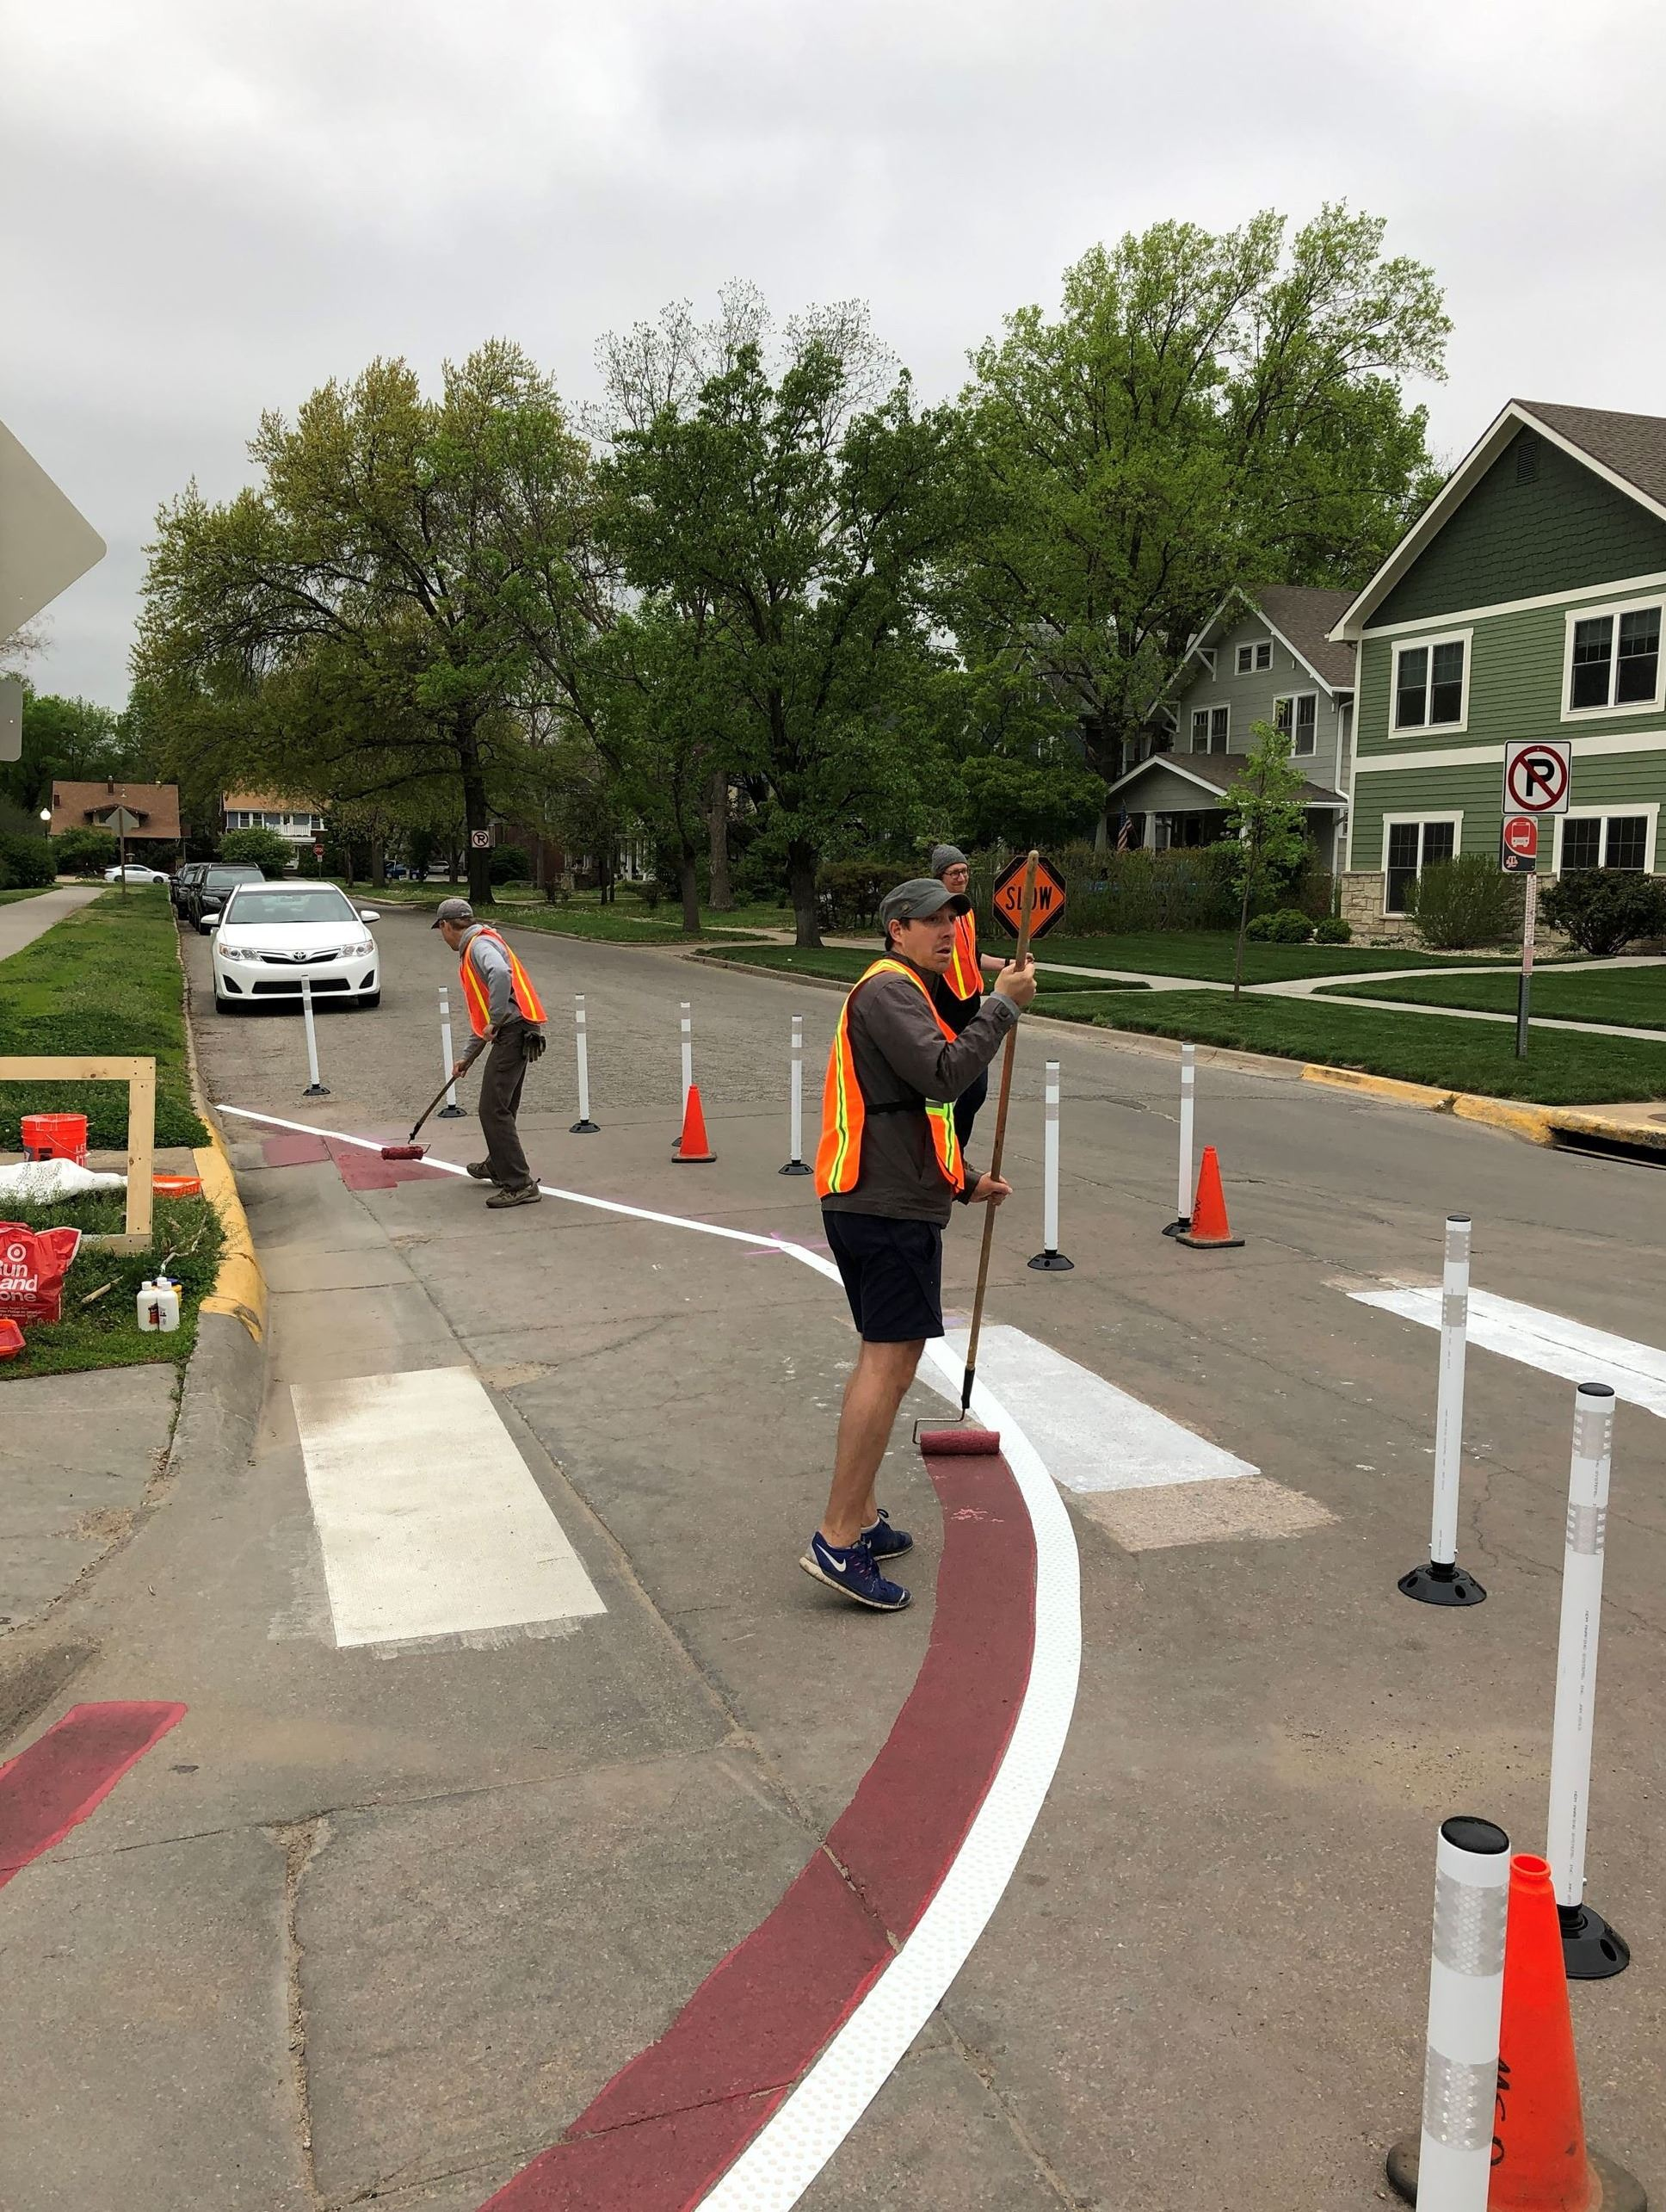 Painting the road to reducing pedestrian crossing distance.